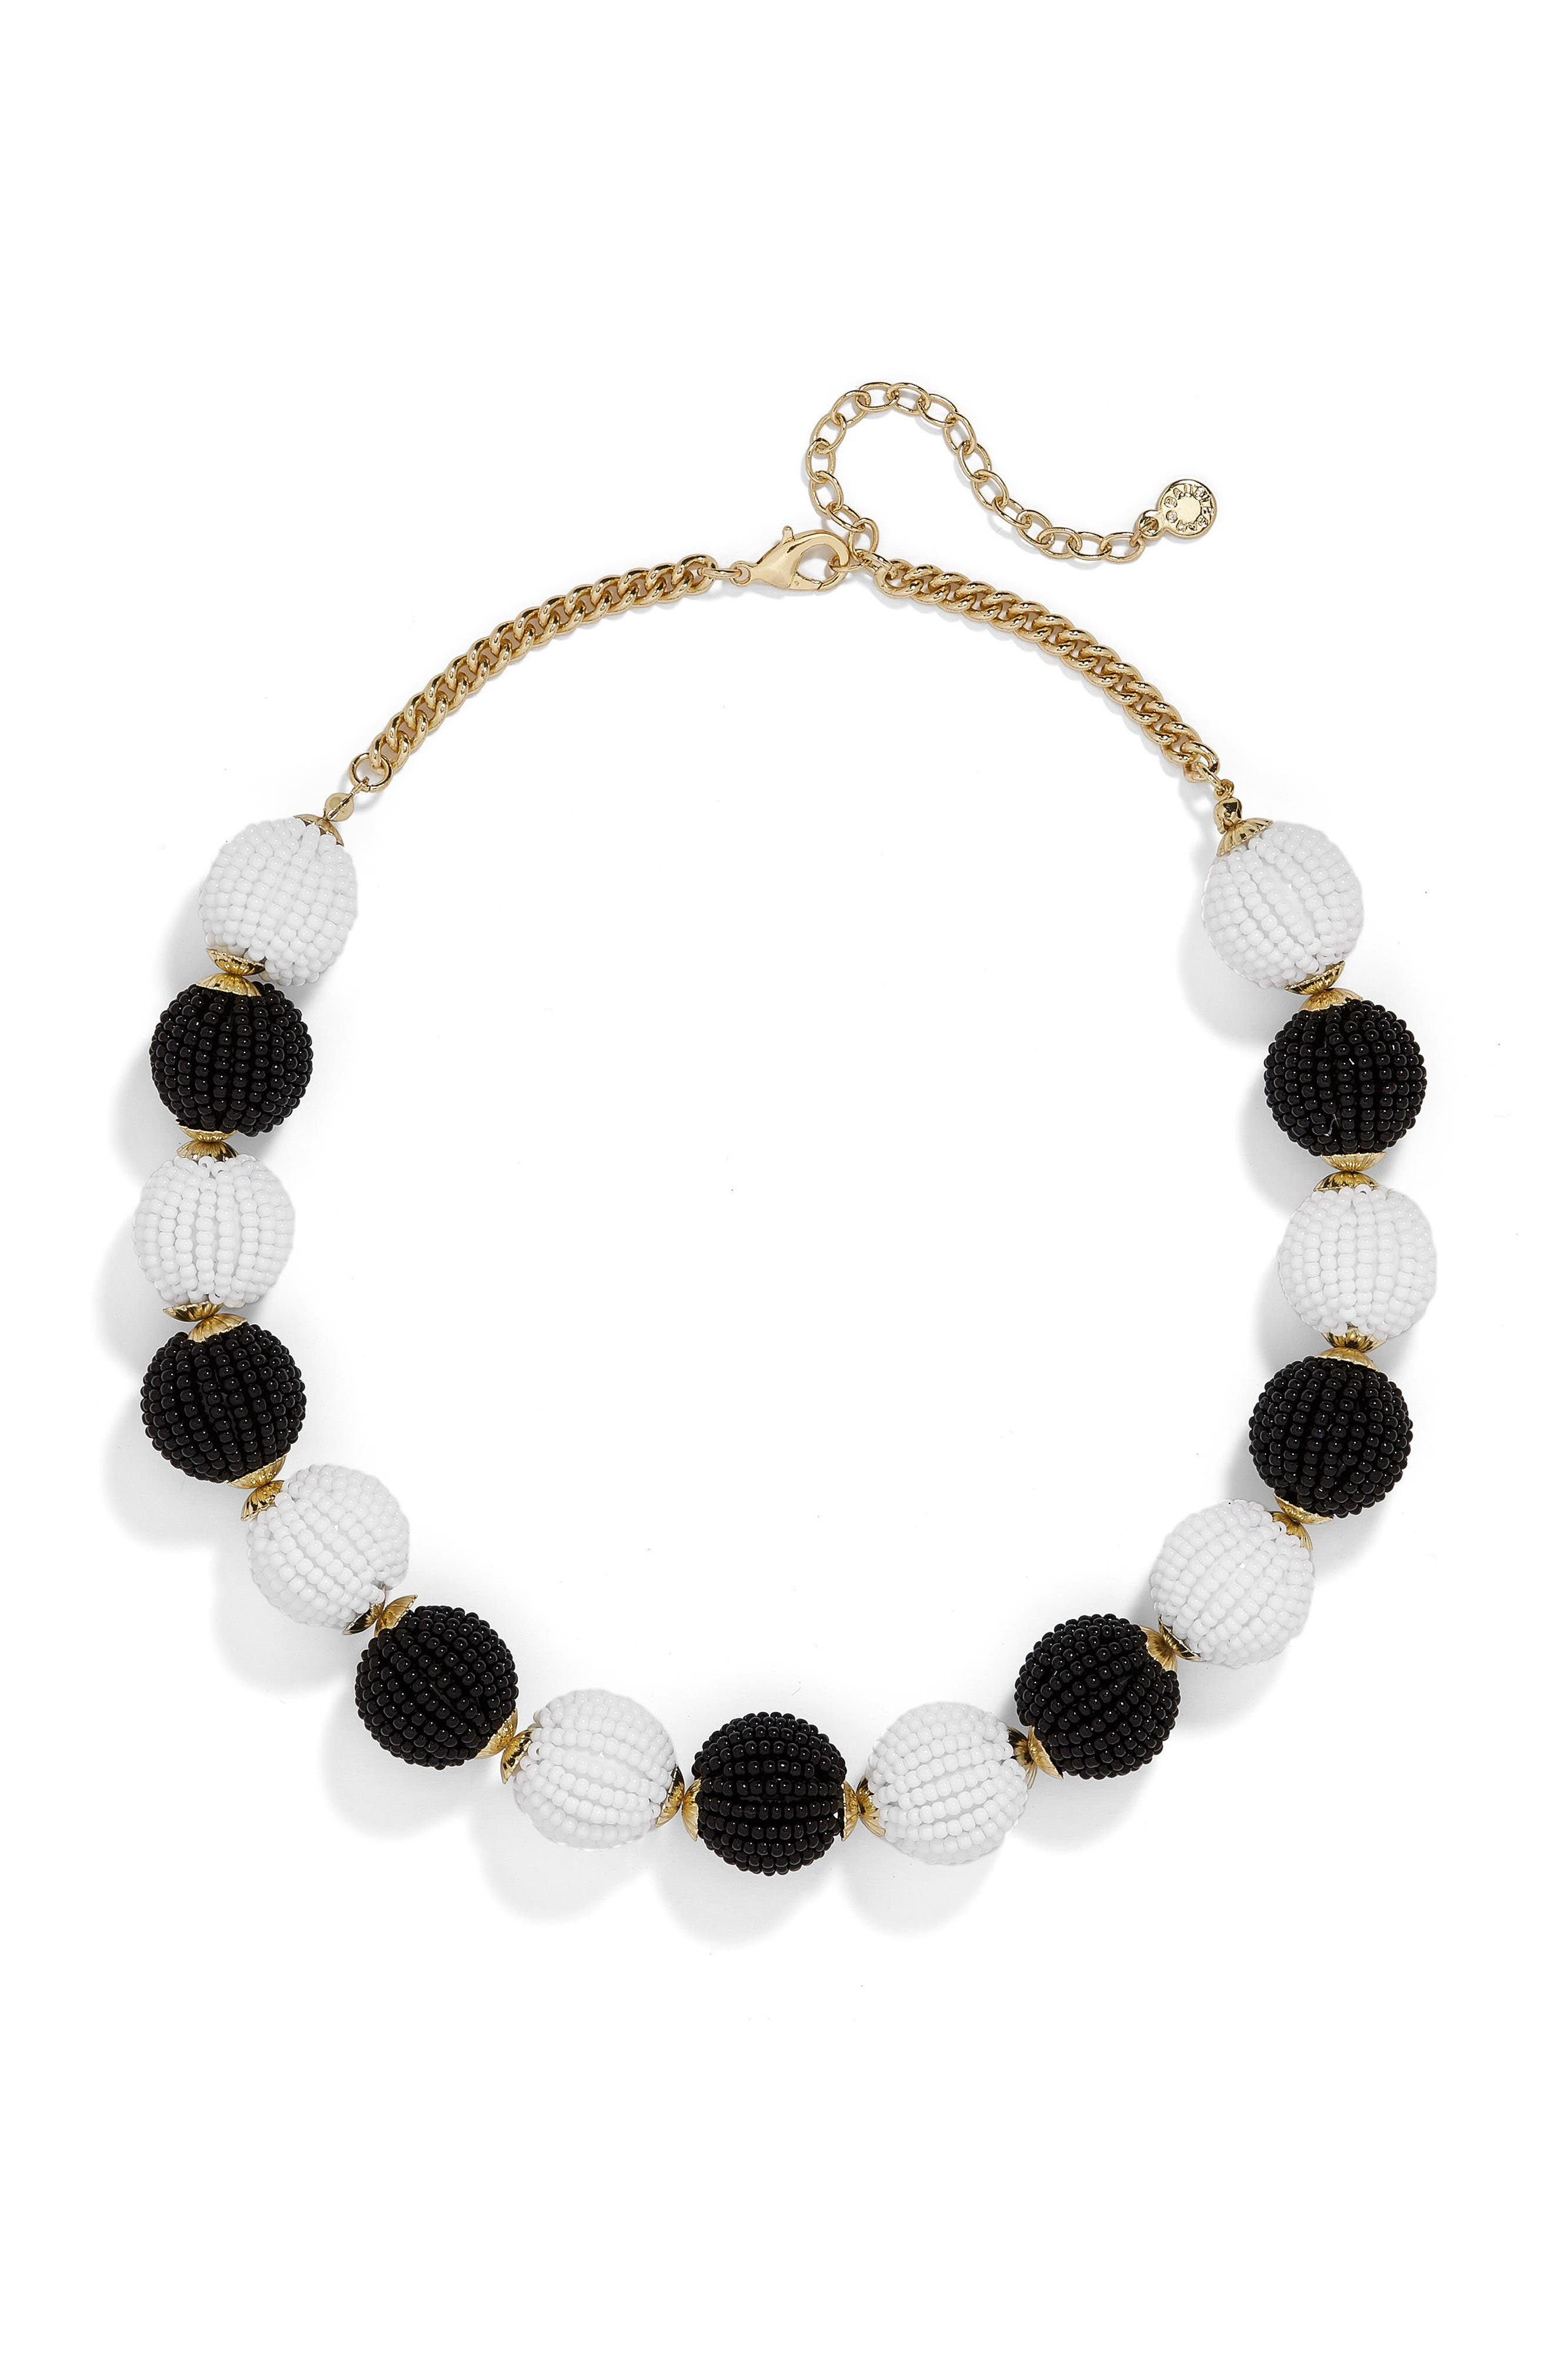 Main Image - BaubleBar Beaded Ball Statement Necklace